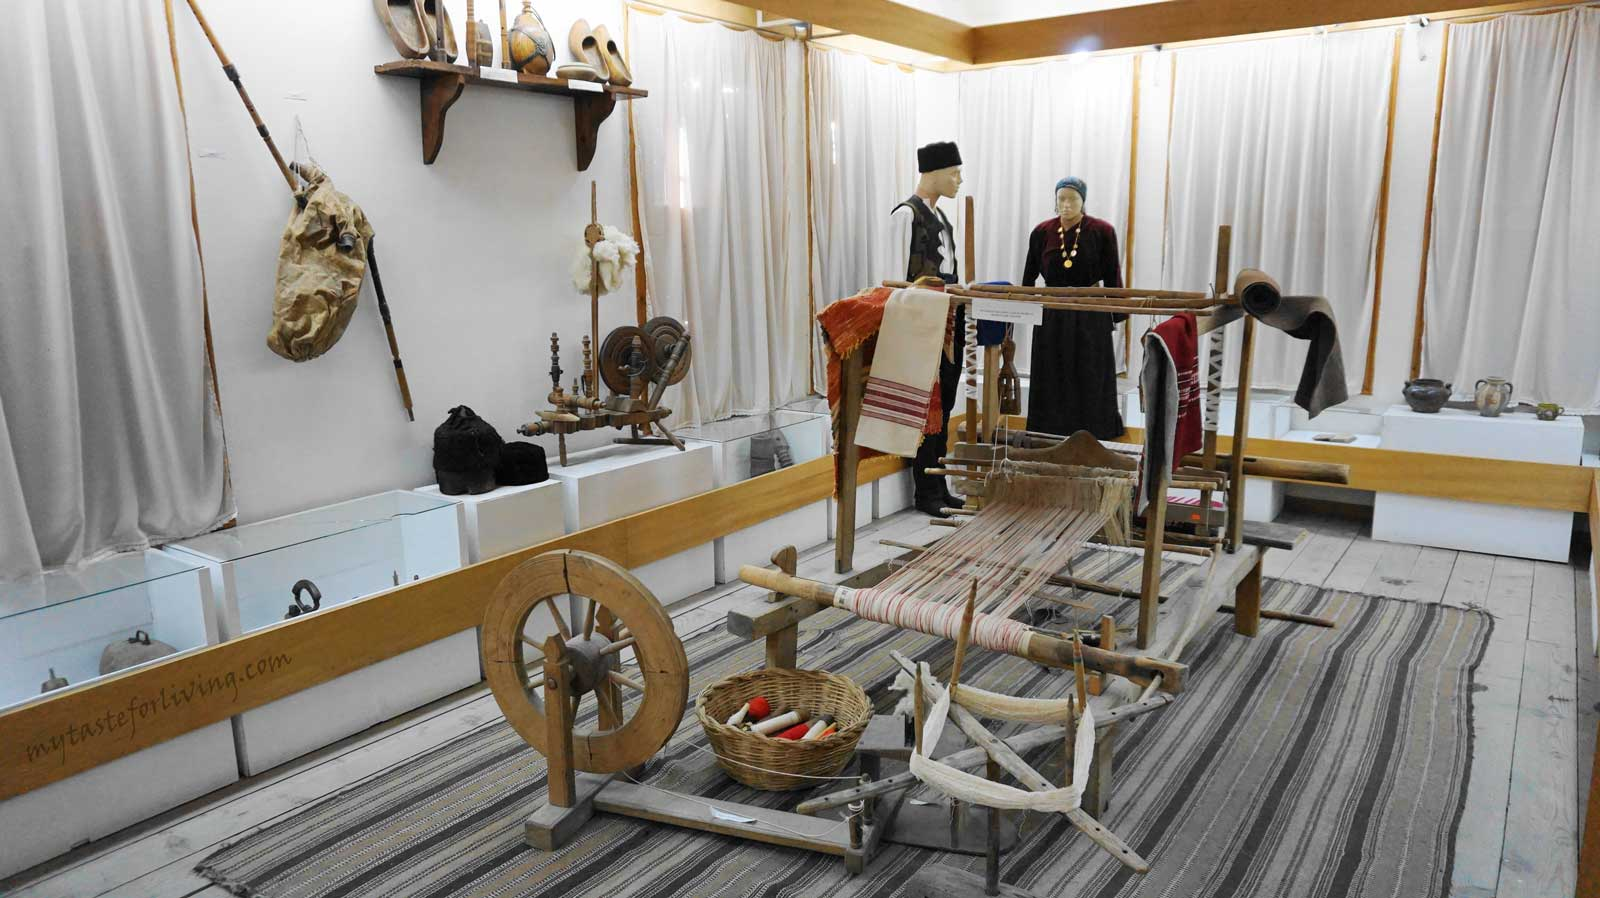 In the middle of the 20th century local enthusiasts created a delightful museum collection, which was transformed into the Historical museum of Strelcha in 2002.